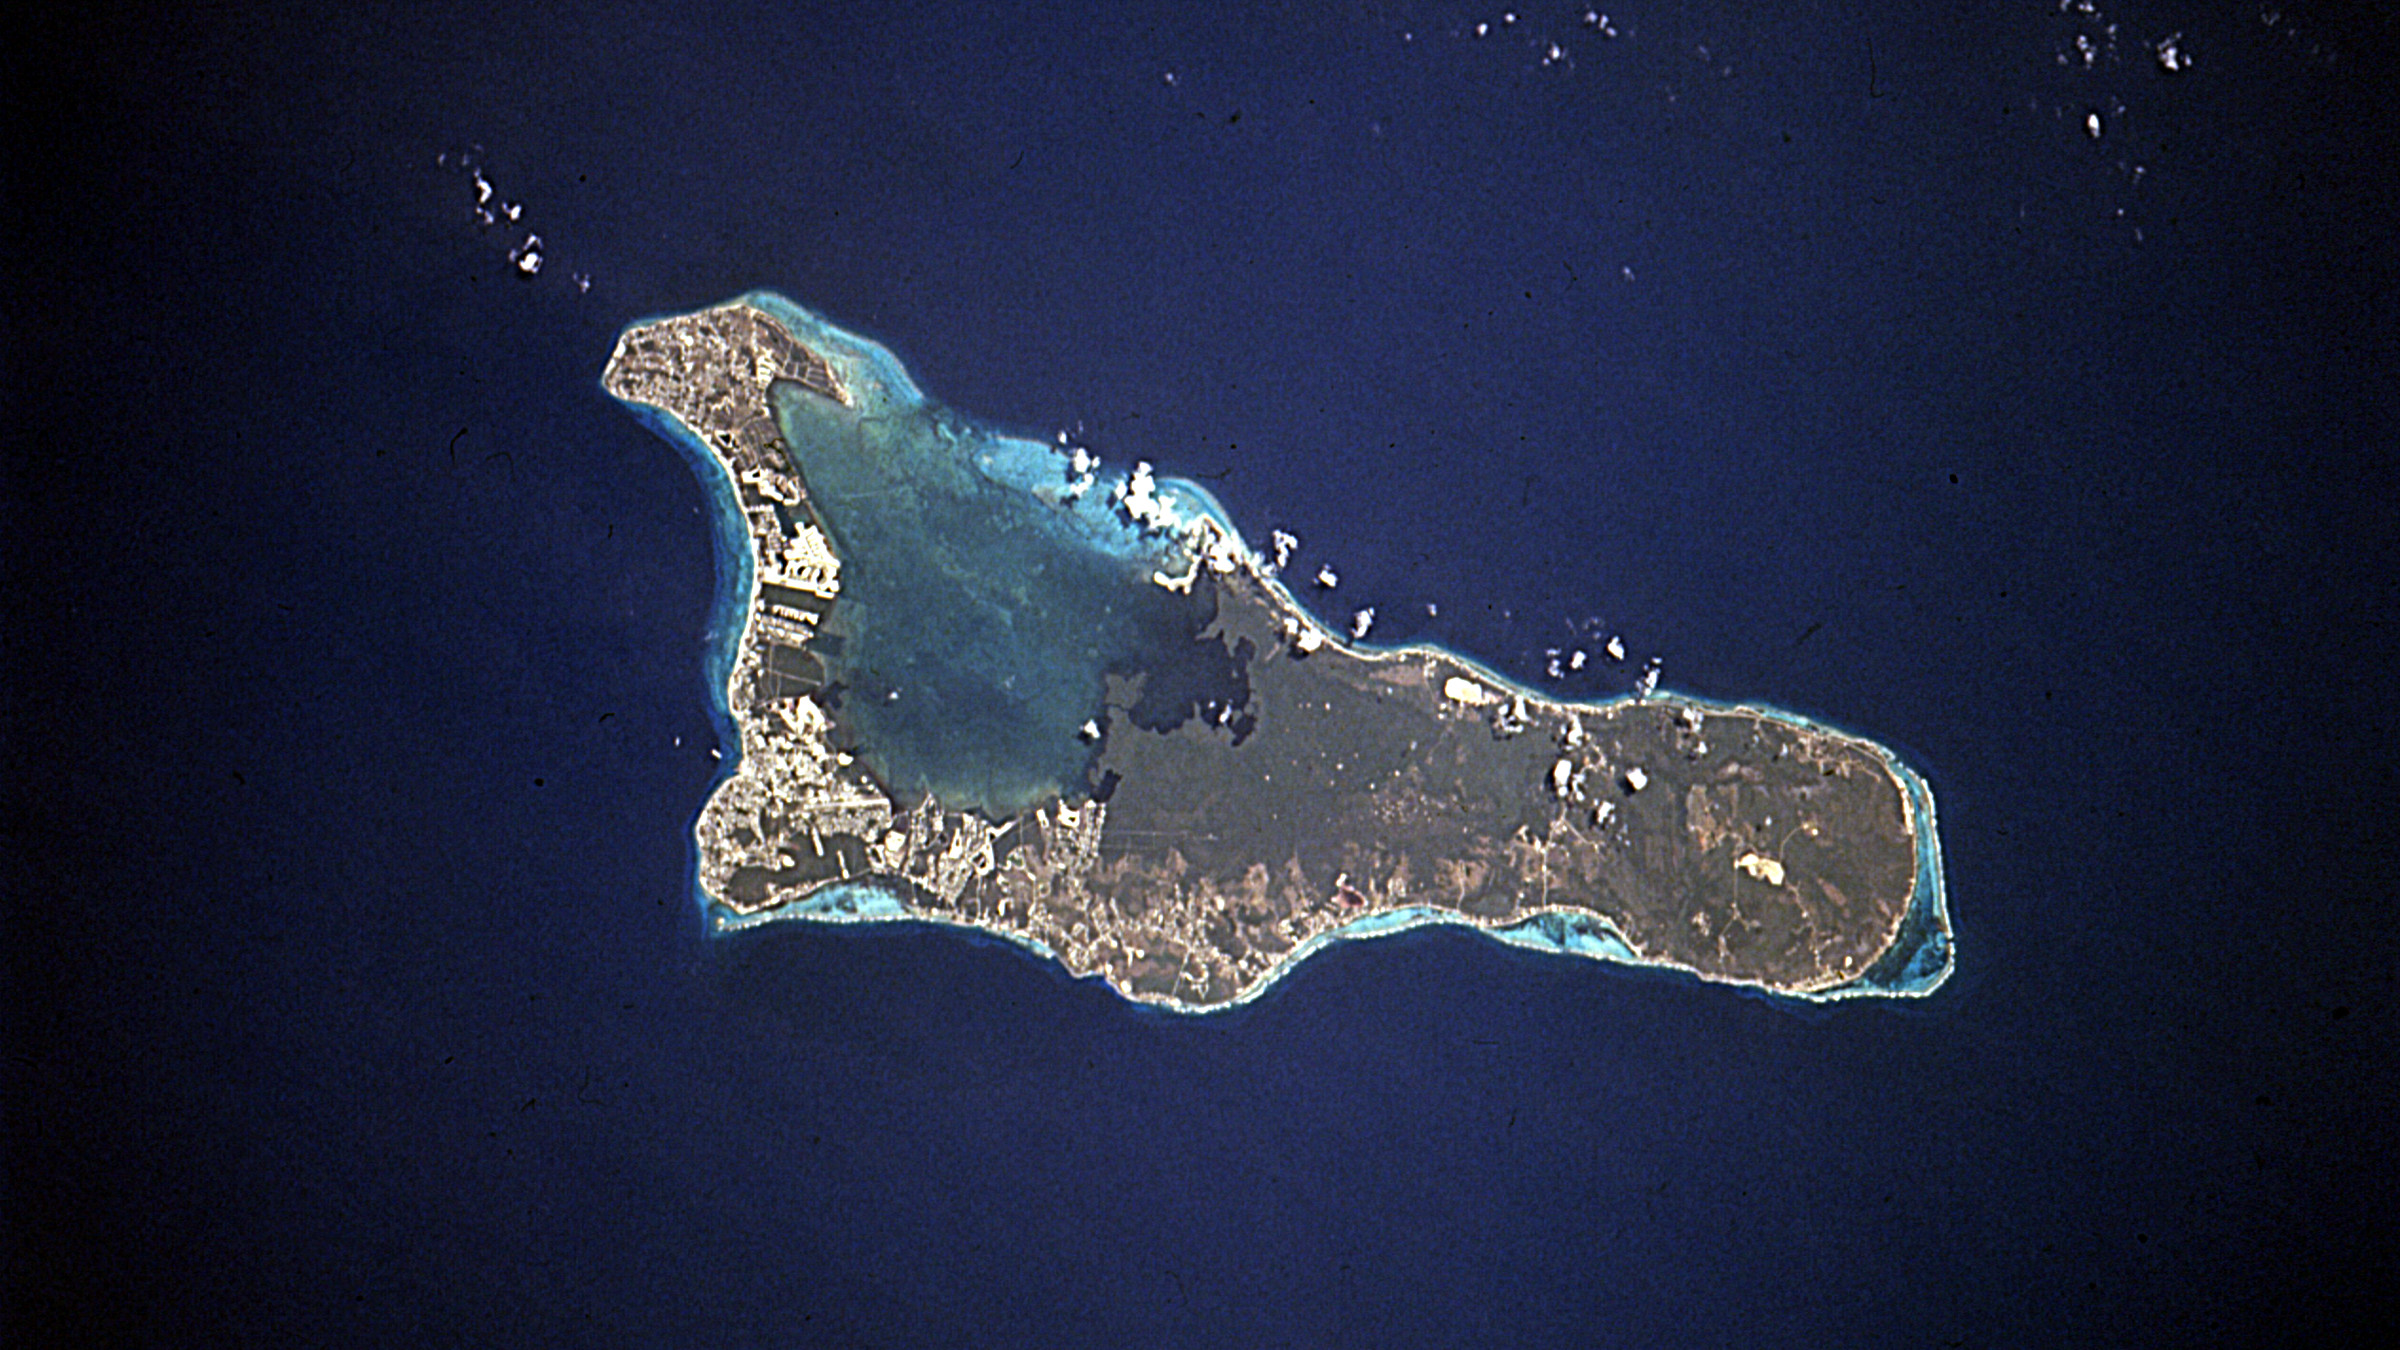 The island of Grand Cayman, a British dependency that covers 76 square miles (197 square kilometers) in the northwest Caribbean Sea, is visible in this near-vertical photograph. Geologically similar to The Bahamas, Grand Cayman is a low-lying, limestone island located on top of a submarine ridge. The city of George Town, the capital and chief port of the Cayman Islands, can be seen at the southwest end of the island. Grand Cayman's 7-mile beach can be seen on the western side of the island.